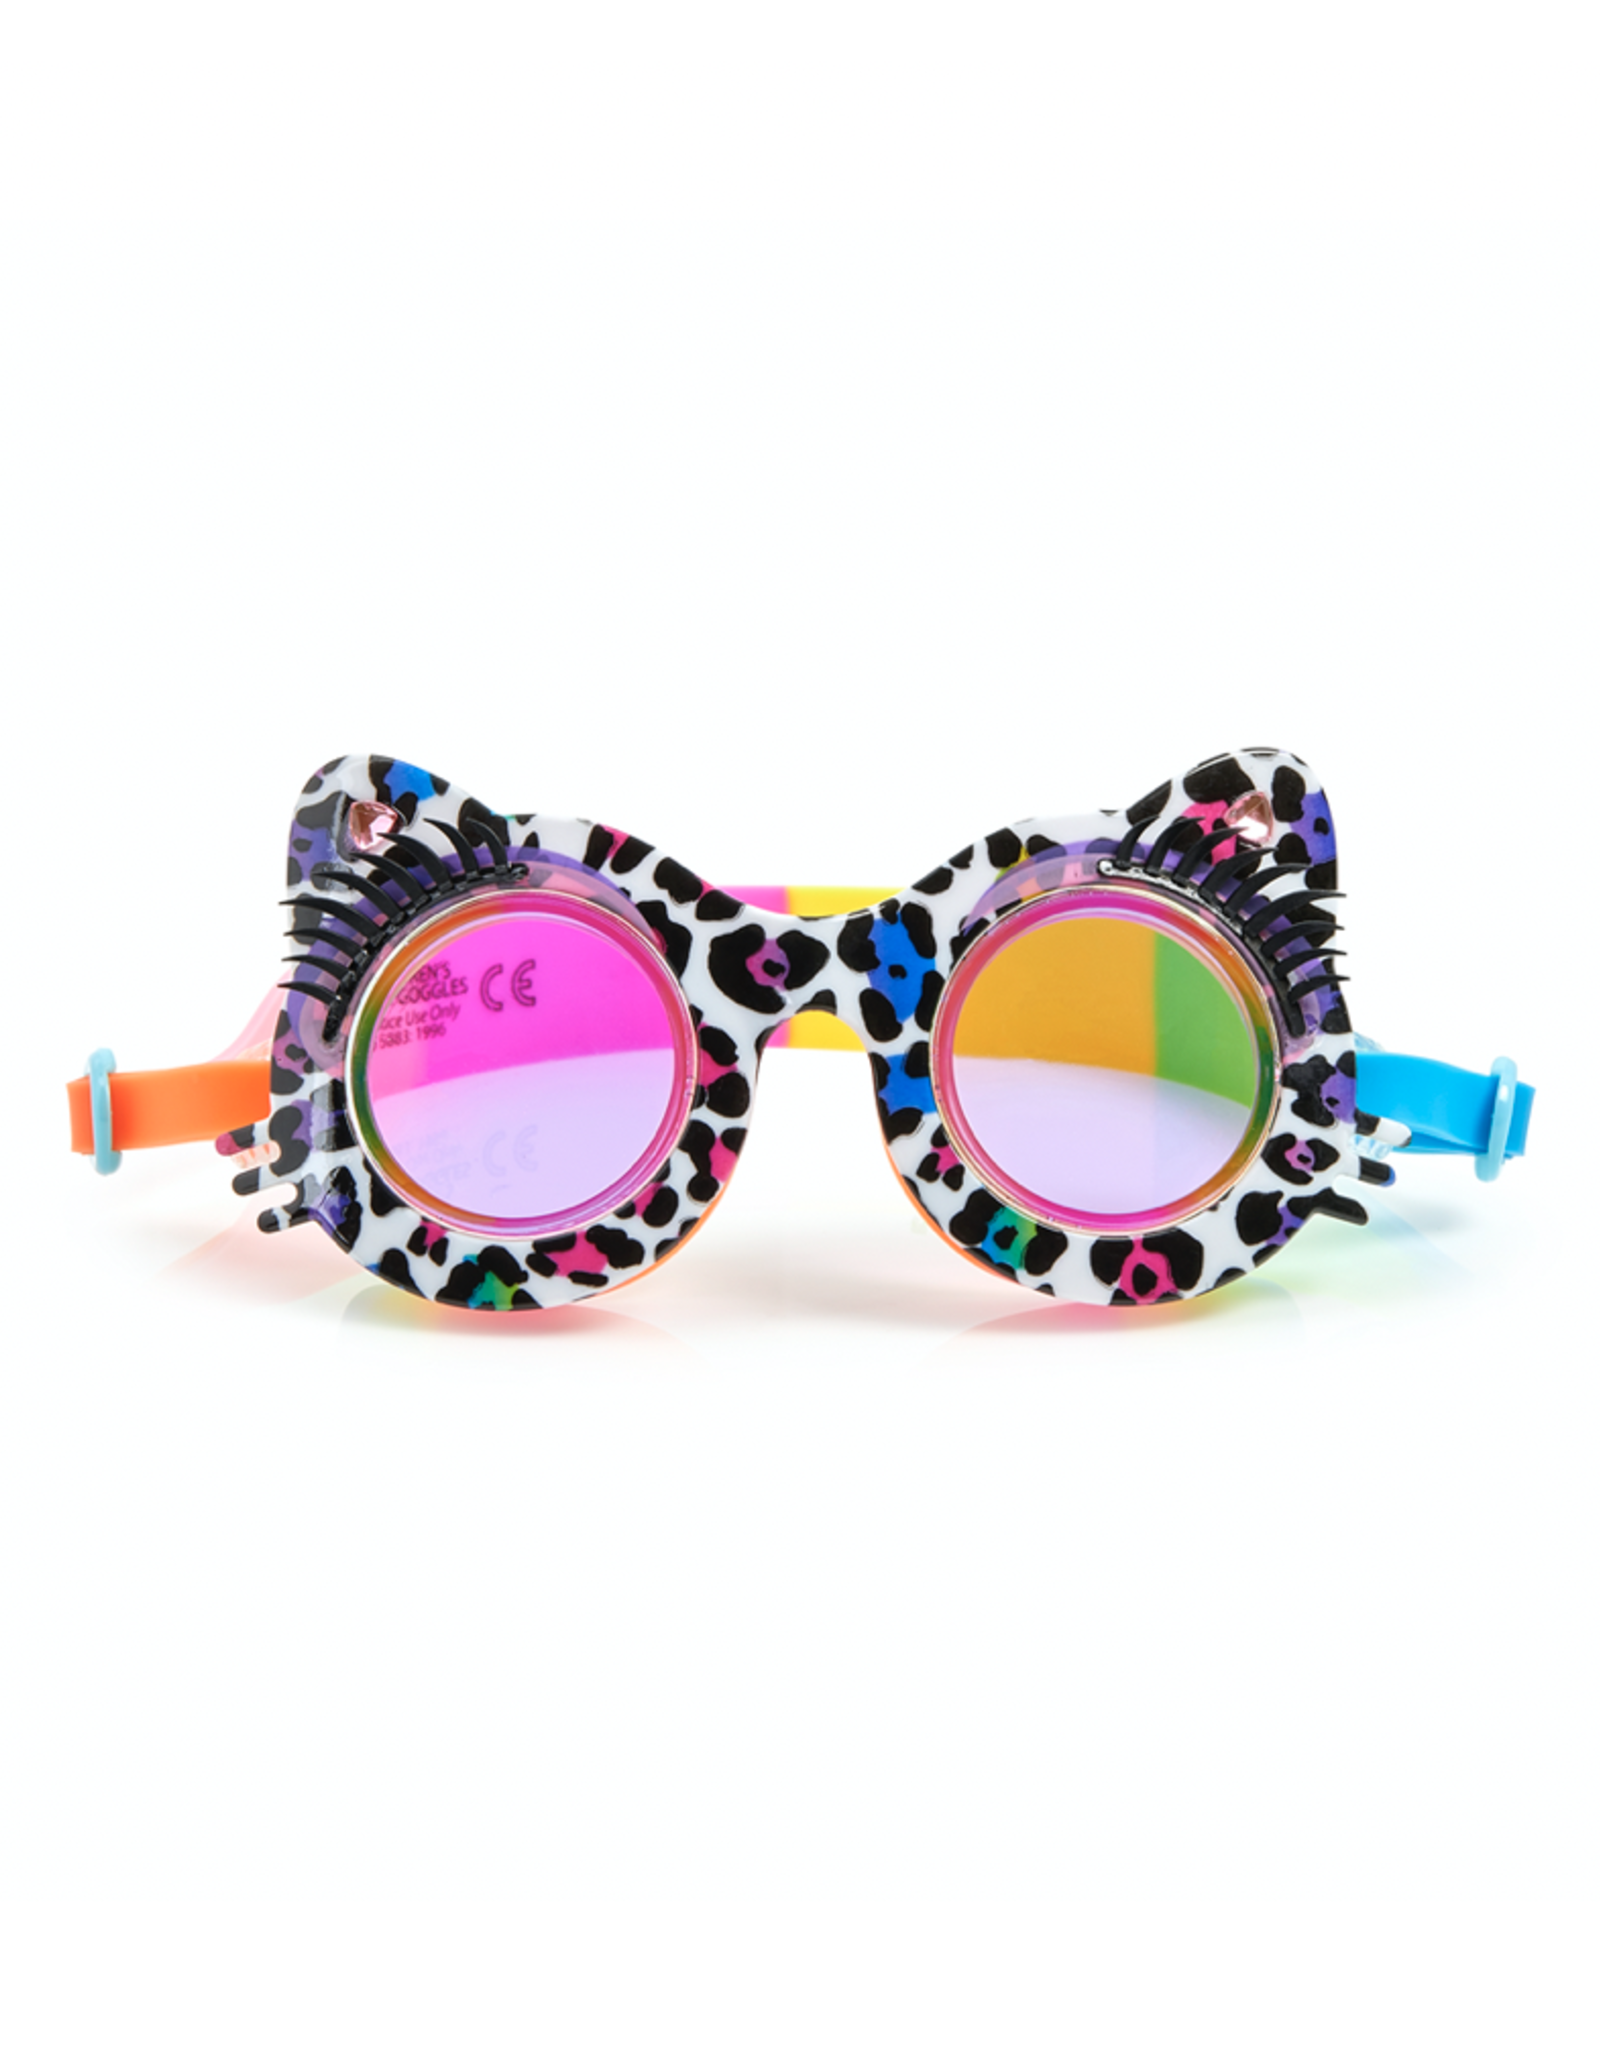 Bling2o Bling2o Goggles - Midnight Meow